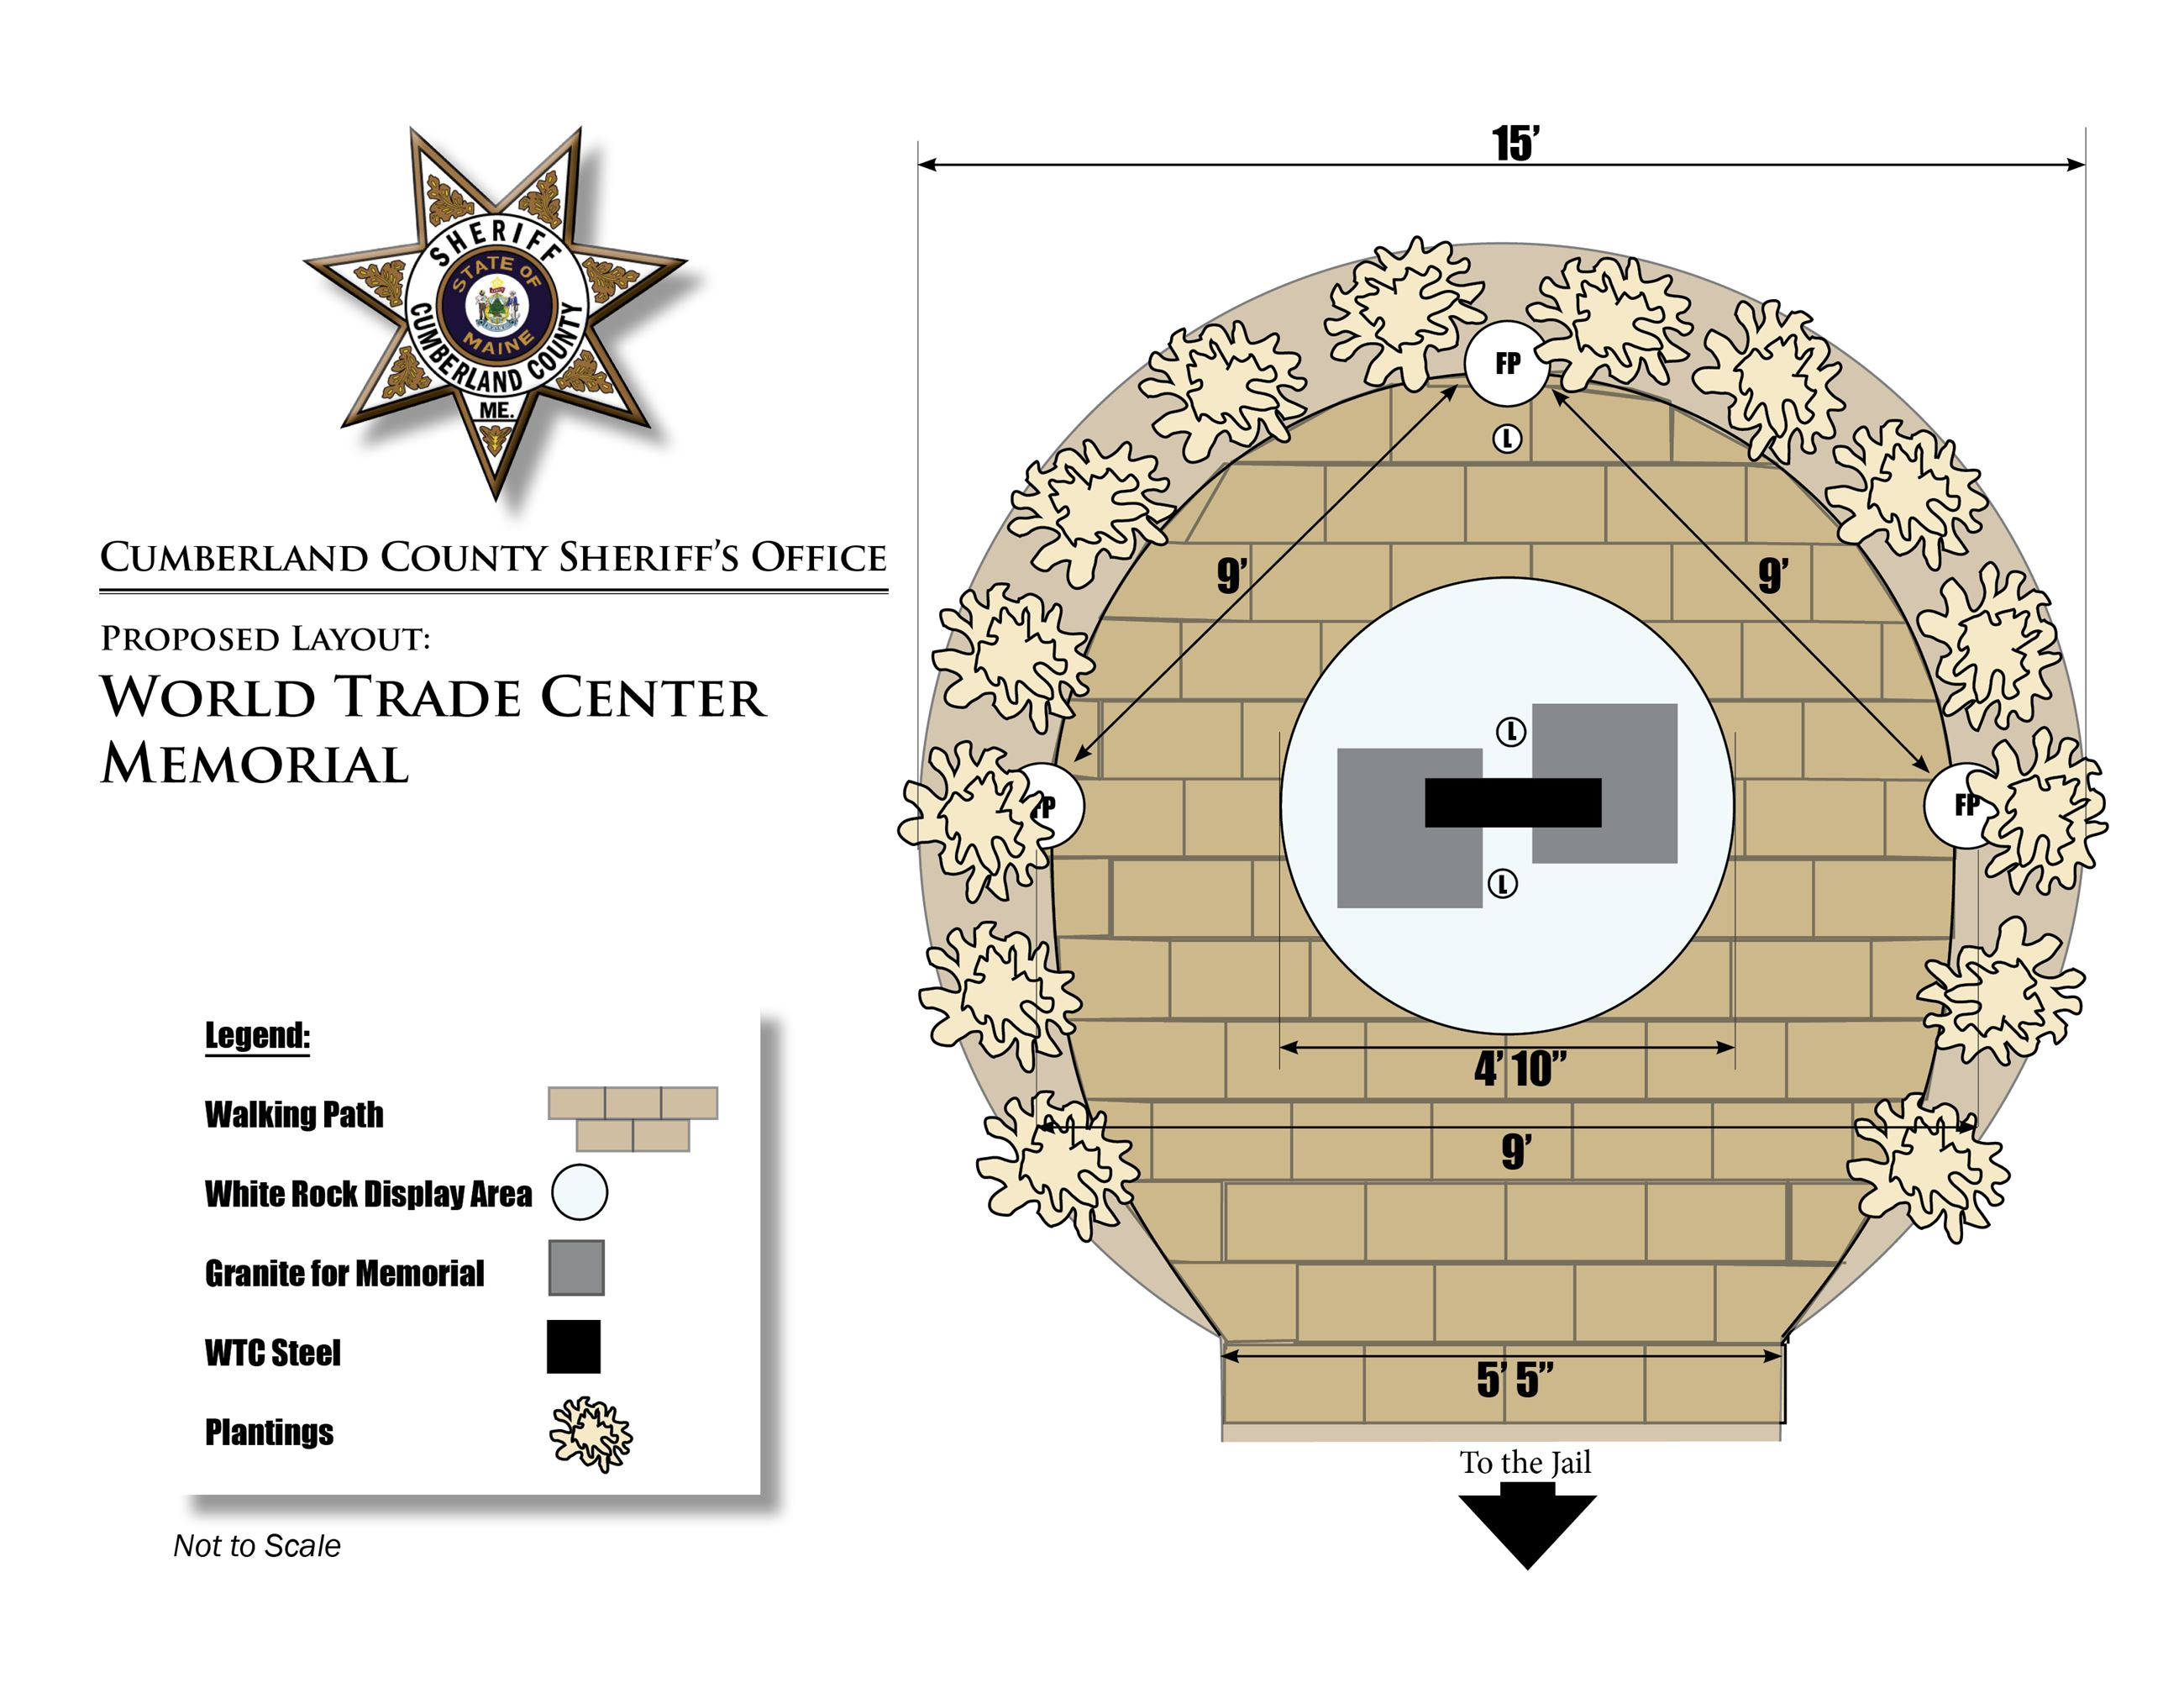 World Trade Center Memorial Proposed Layout